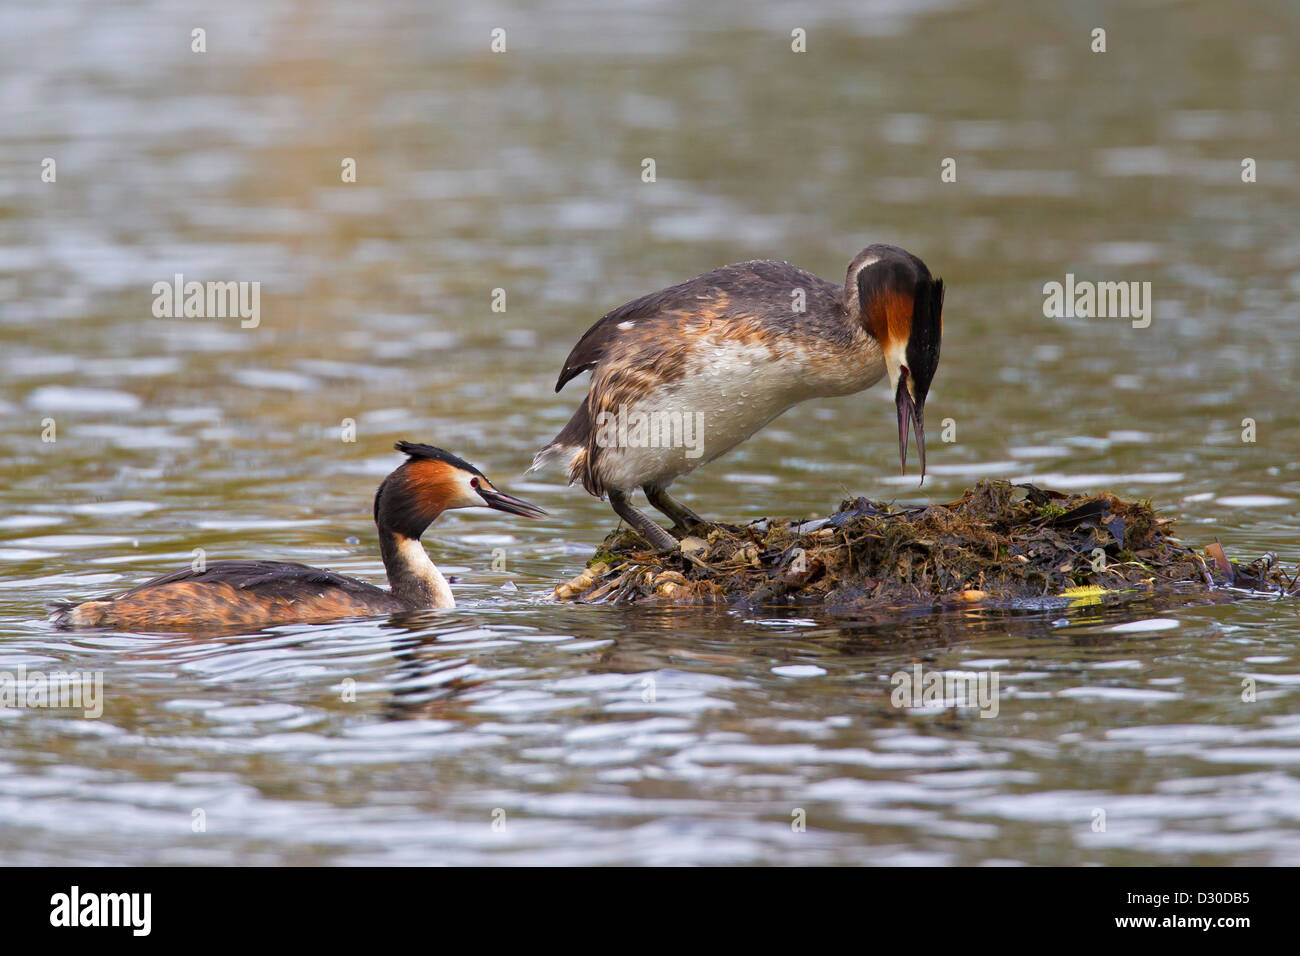 Great Crested Grebe (Podiceps cristatus) pair entering nest made of rotten vegetation in lake - Stock Image